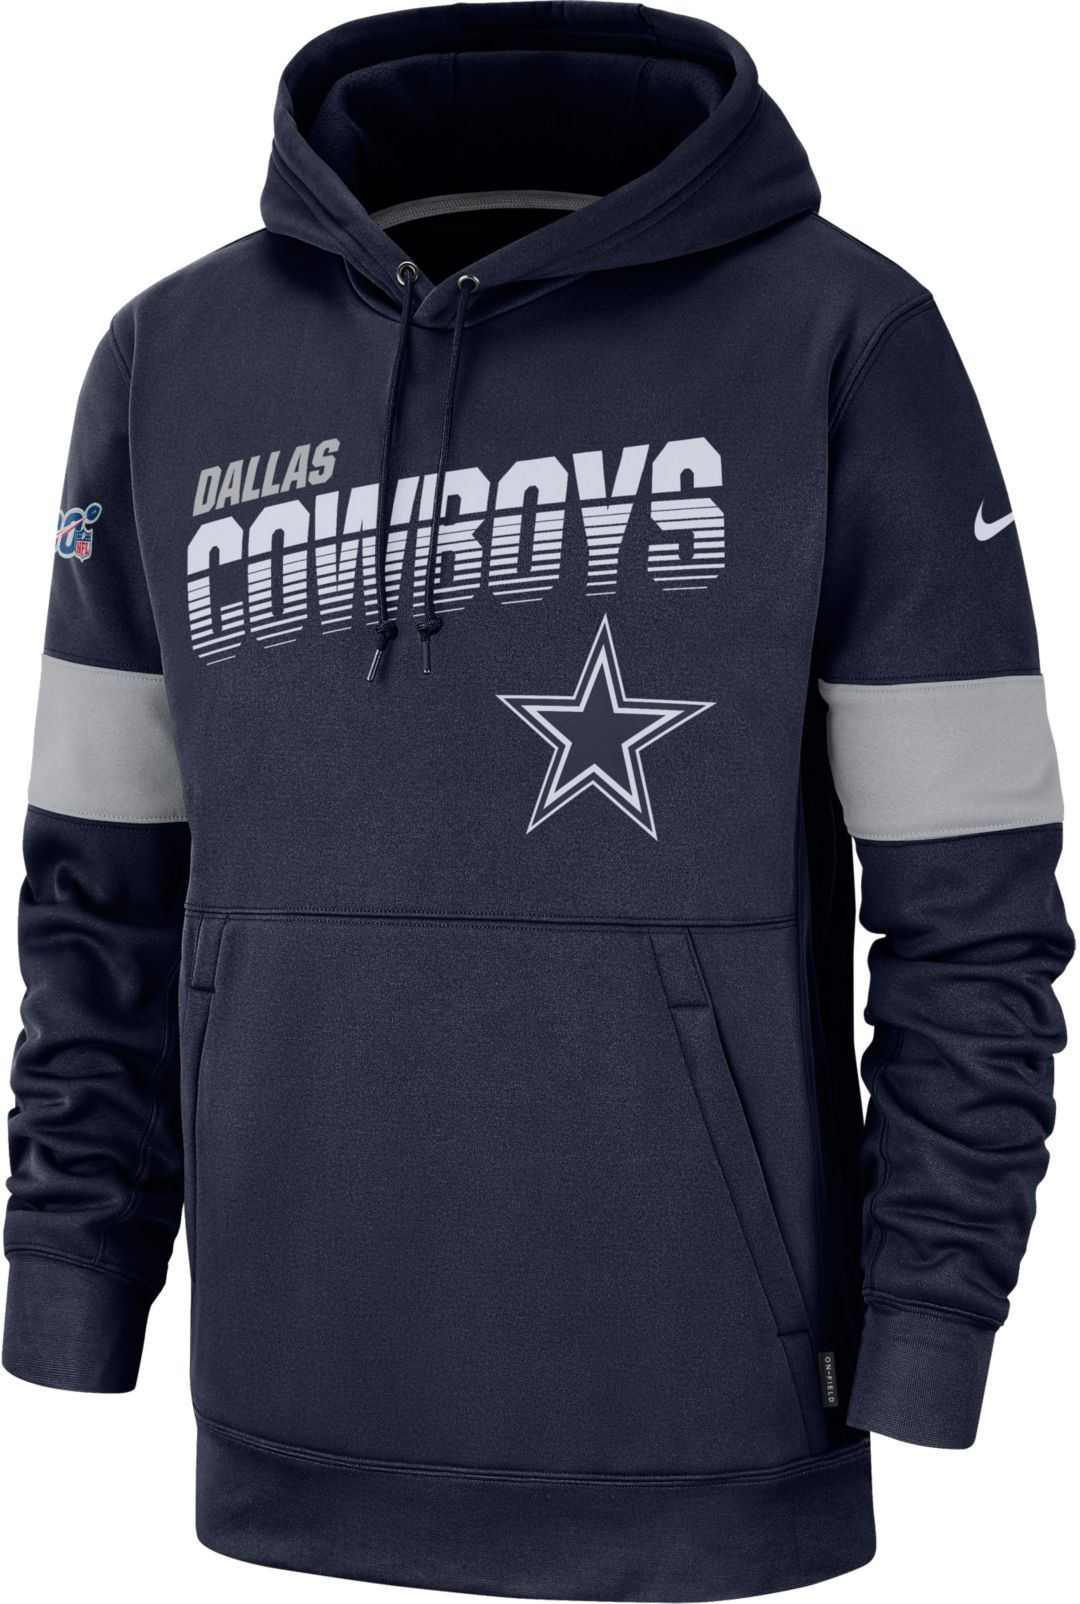 promo code 010c6 bd989 Nike Men's Dallas Cowboys 100th Sideline Therma-FIT Navy Pullover Hoodie